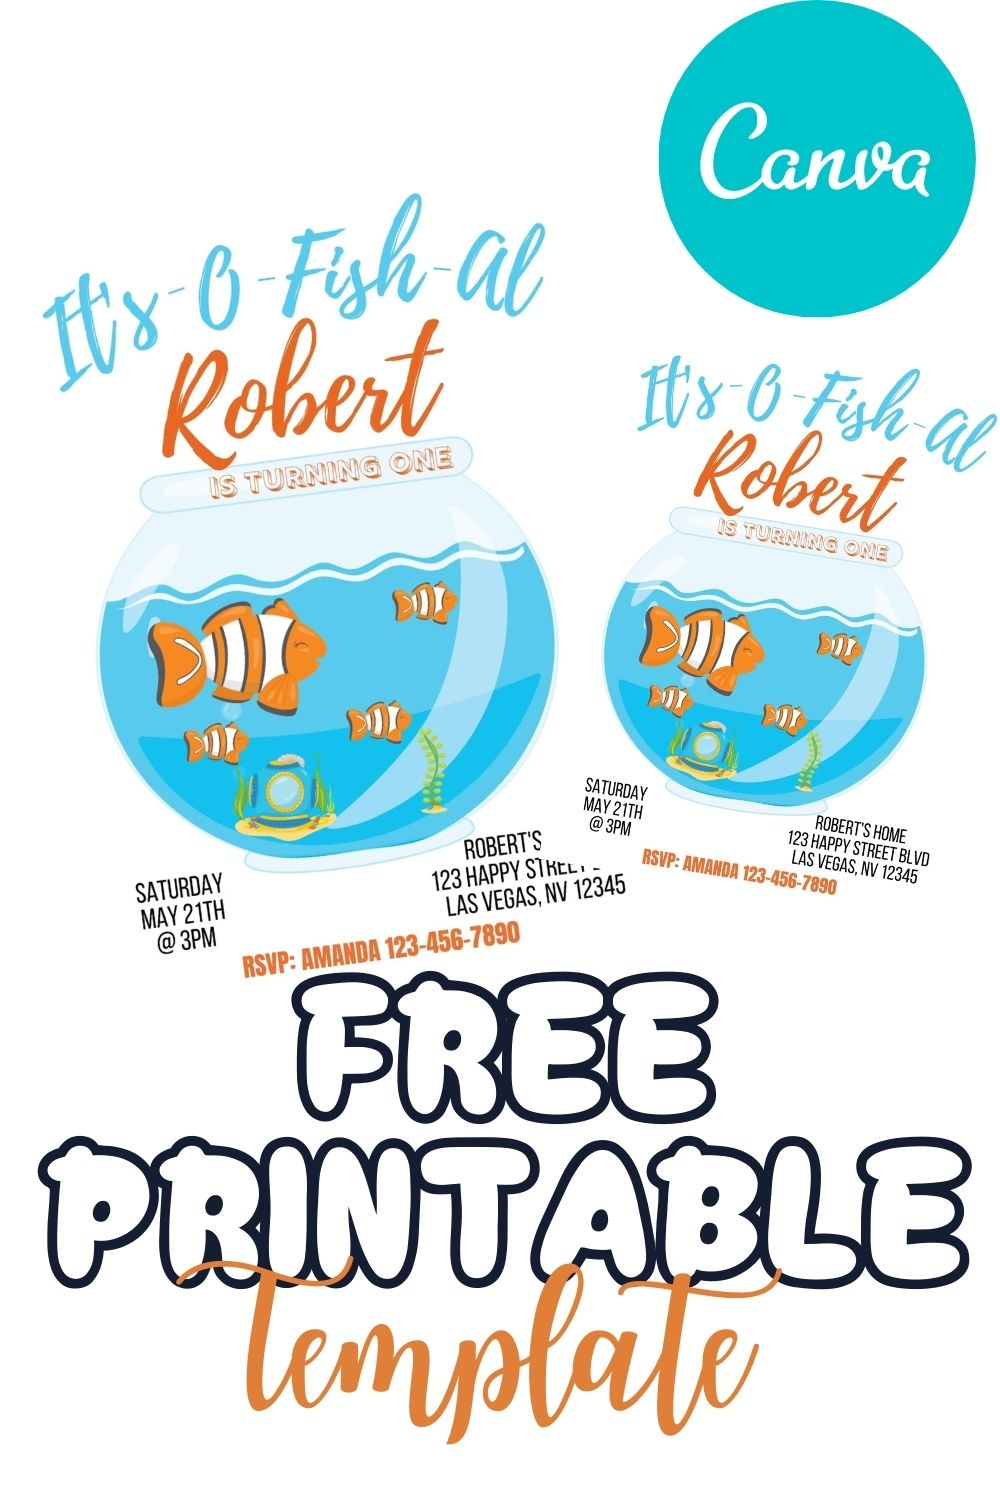 FREE PRINTABLE TEMPLATE IT'S O FISH Al